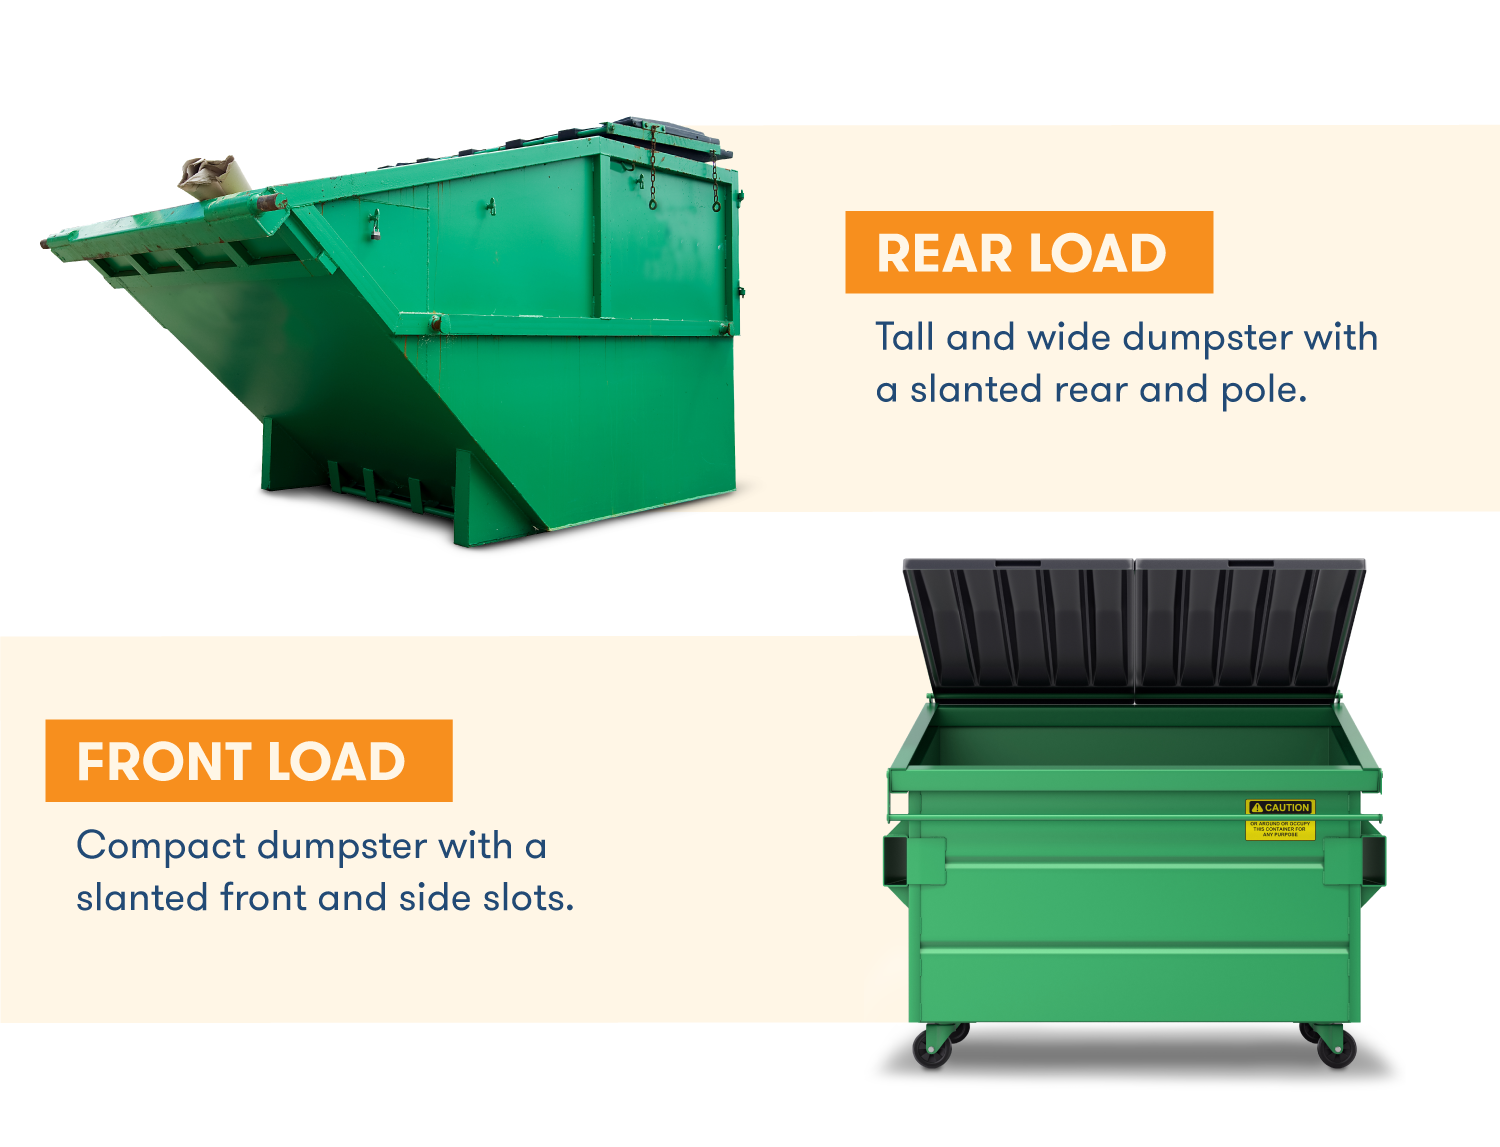 A rear dumpster dumpster is tall and wide with a slanted rear, while a front load dumpster is a compact container with a slanted front.